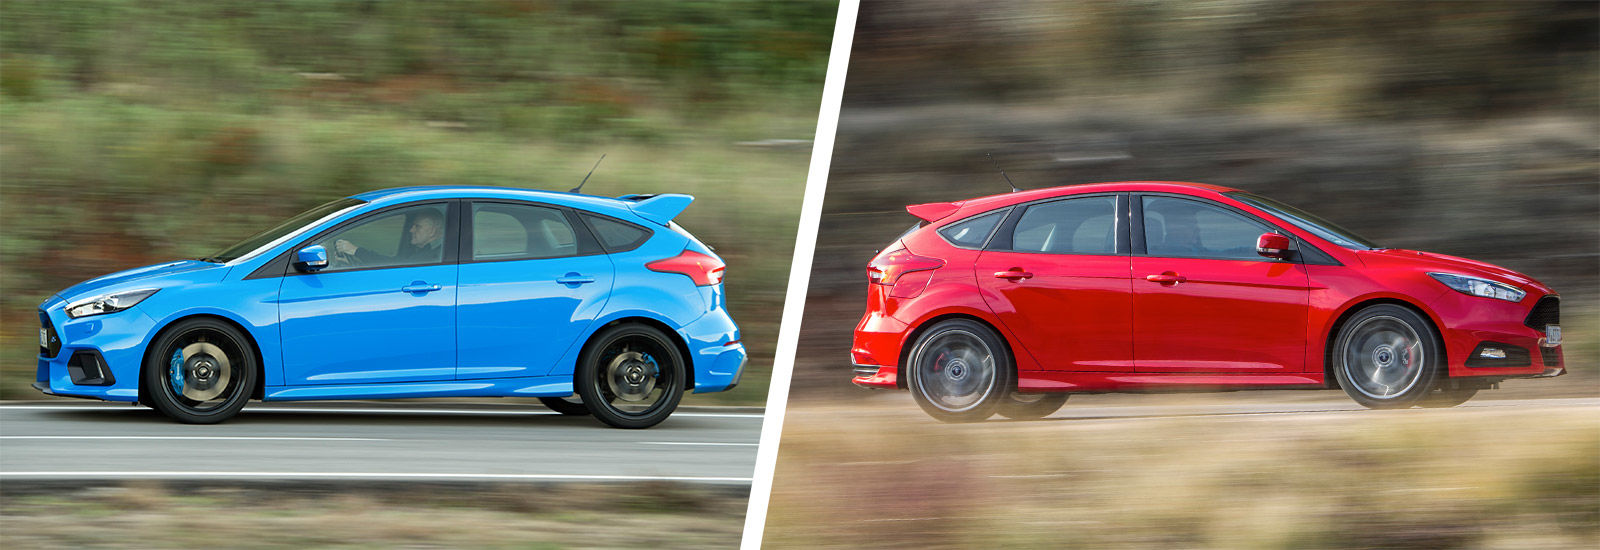 Ford Focus RS vs Focus ST engines & Ford Focus RS vs Focus ST: hot hatches compared | carwow markmcfarlin.com